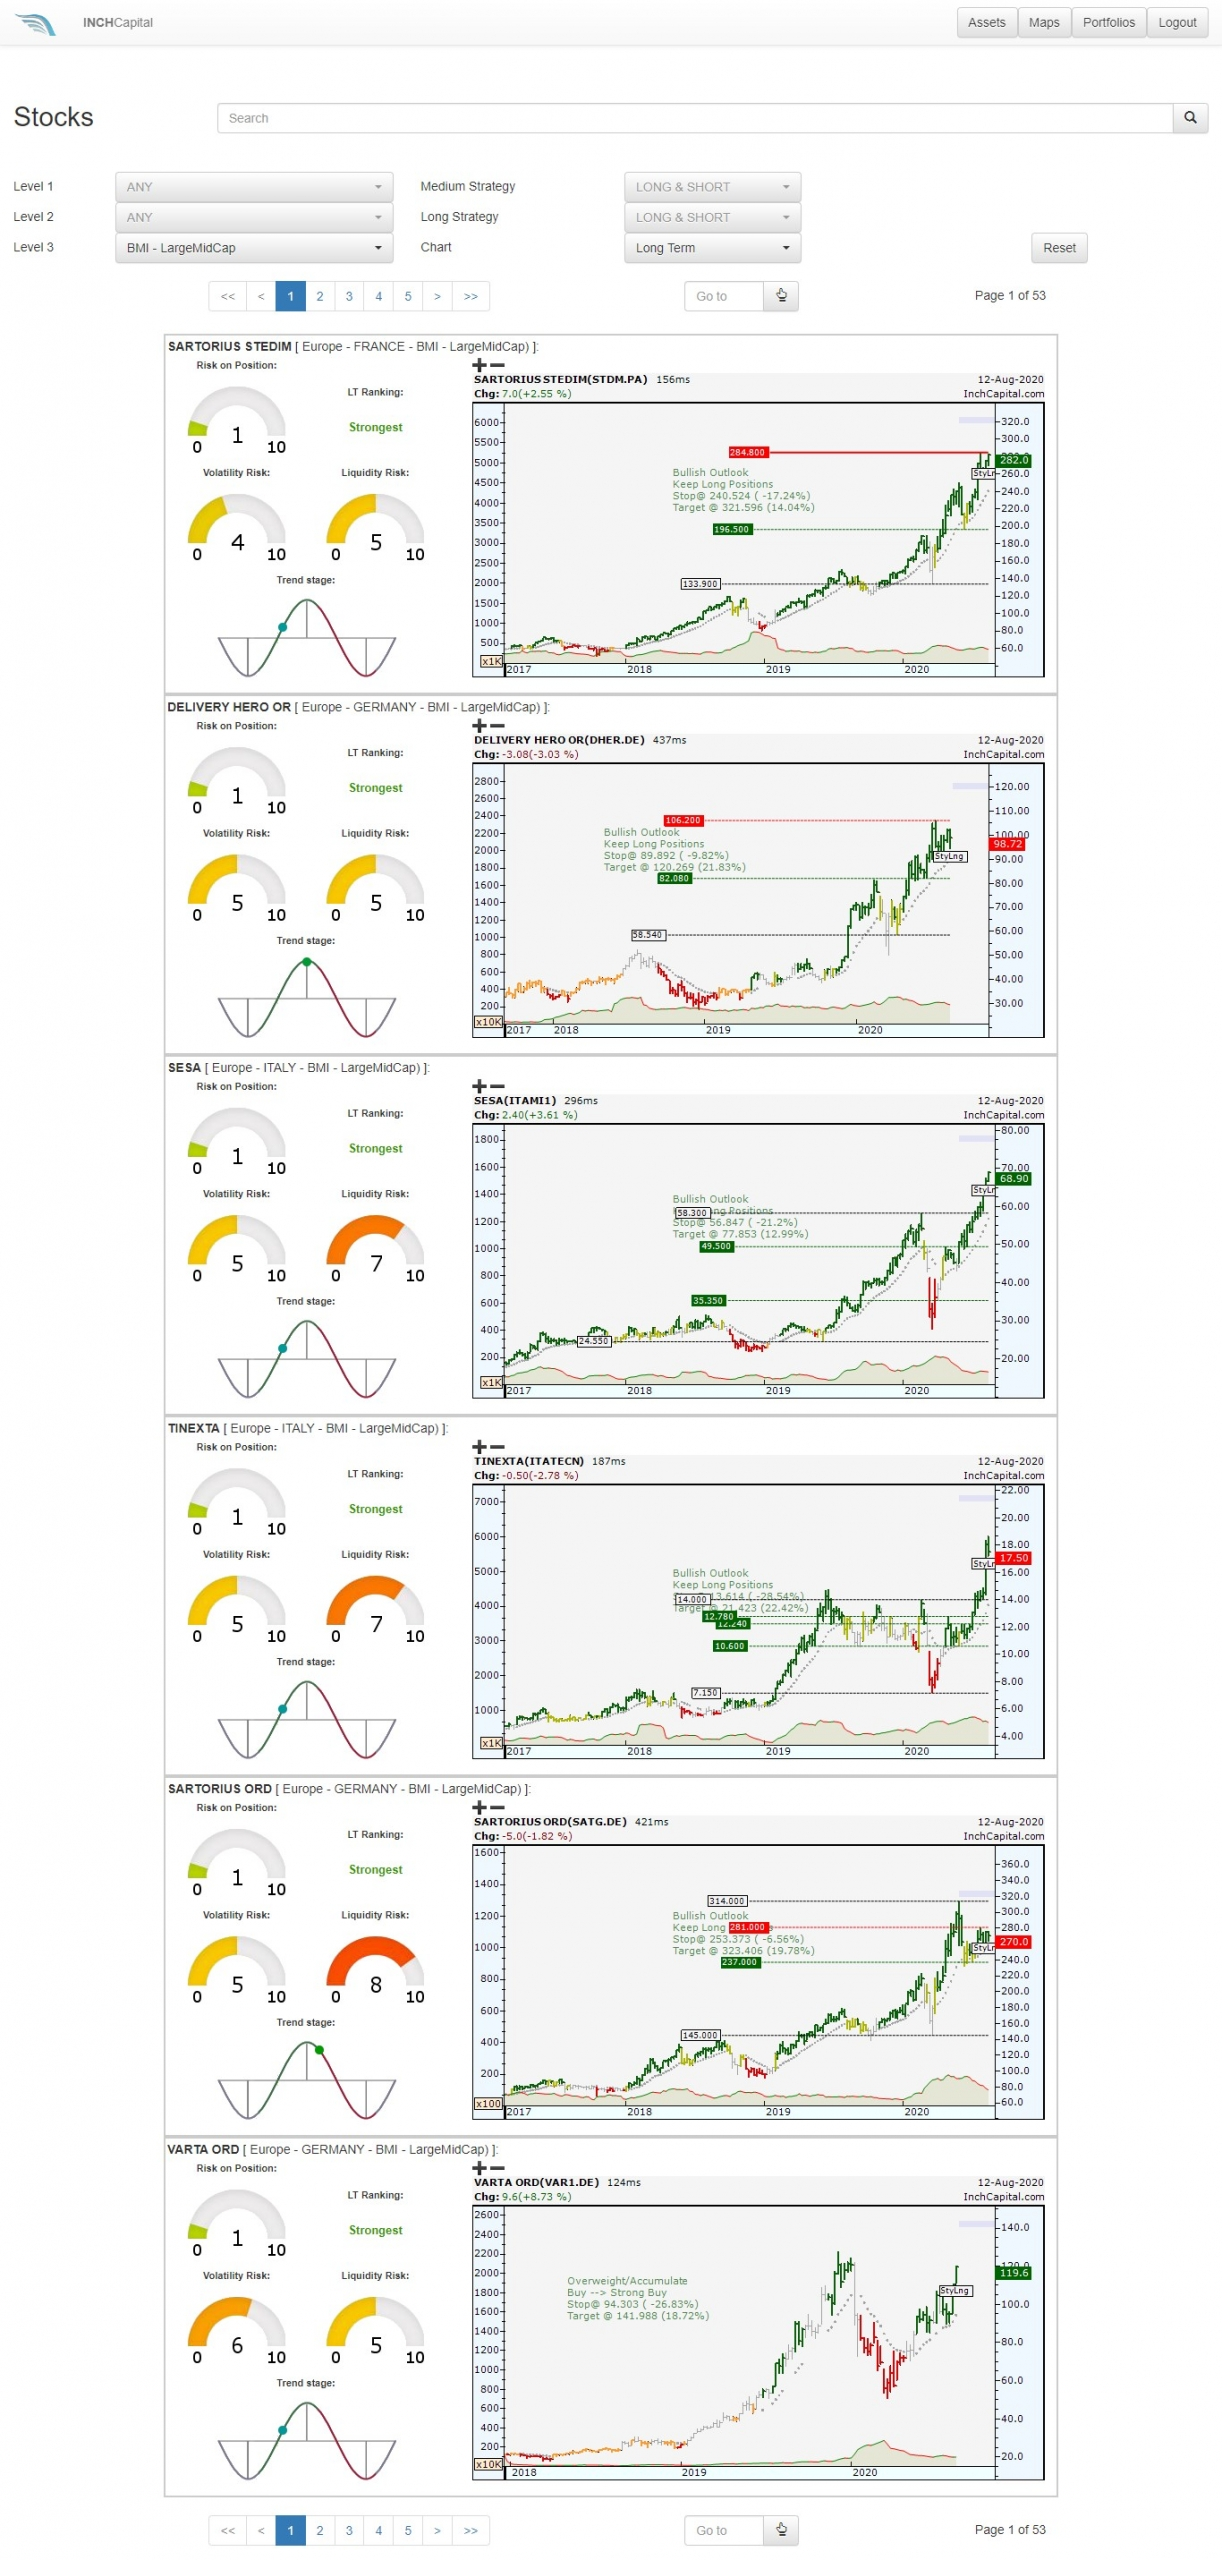 Euro – Equity LargeMidCap listed and based on force by weekly data